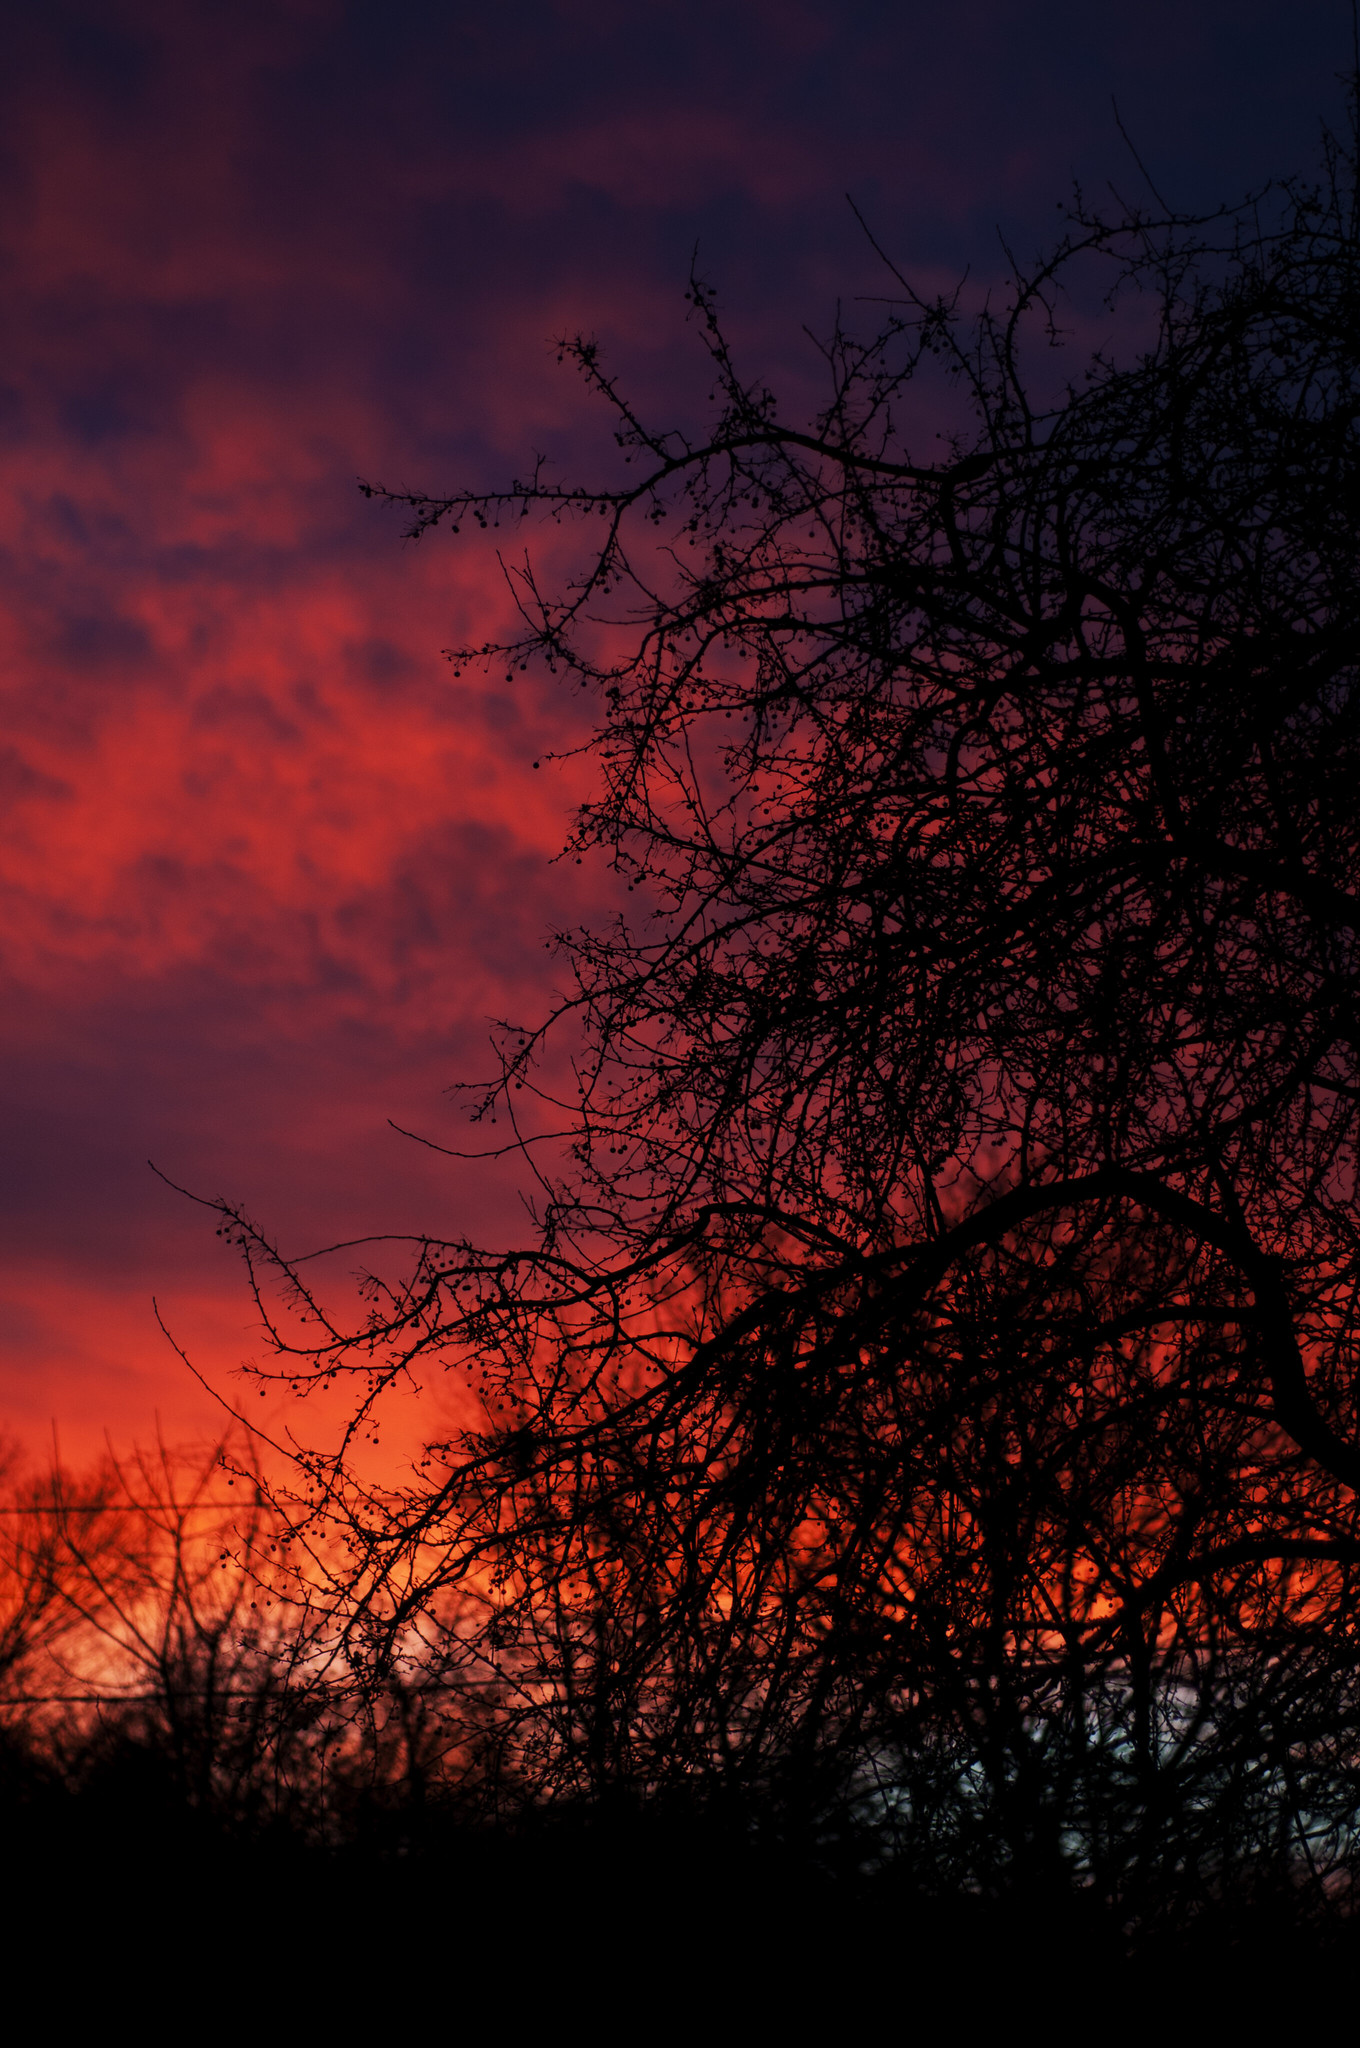 134130 download wallpaper Nature, Sunset, Branches, Dark screensavers and pictures for free